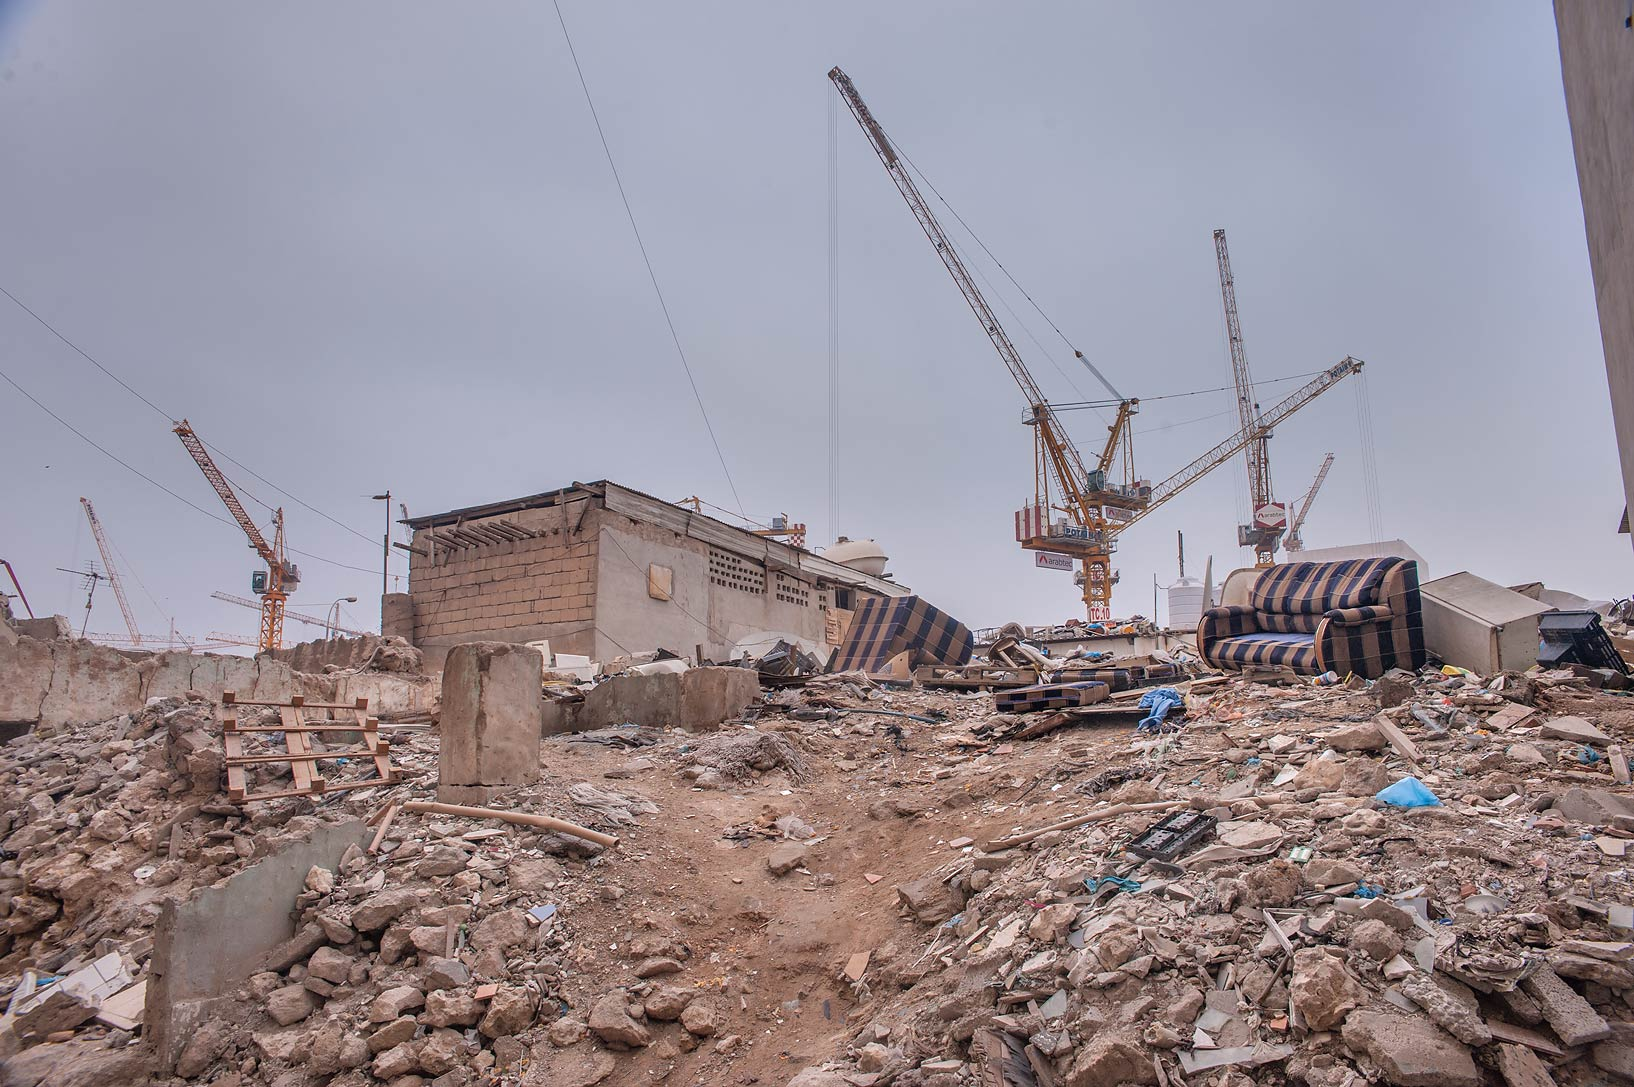 Musheirib construction project from ruins near Al Najada St.. Doha, Qatar